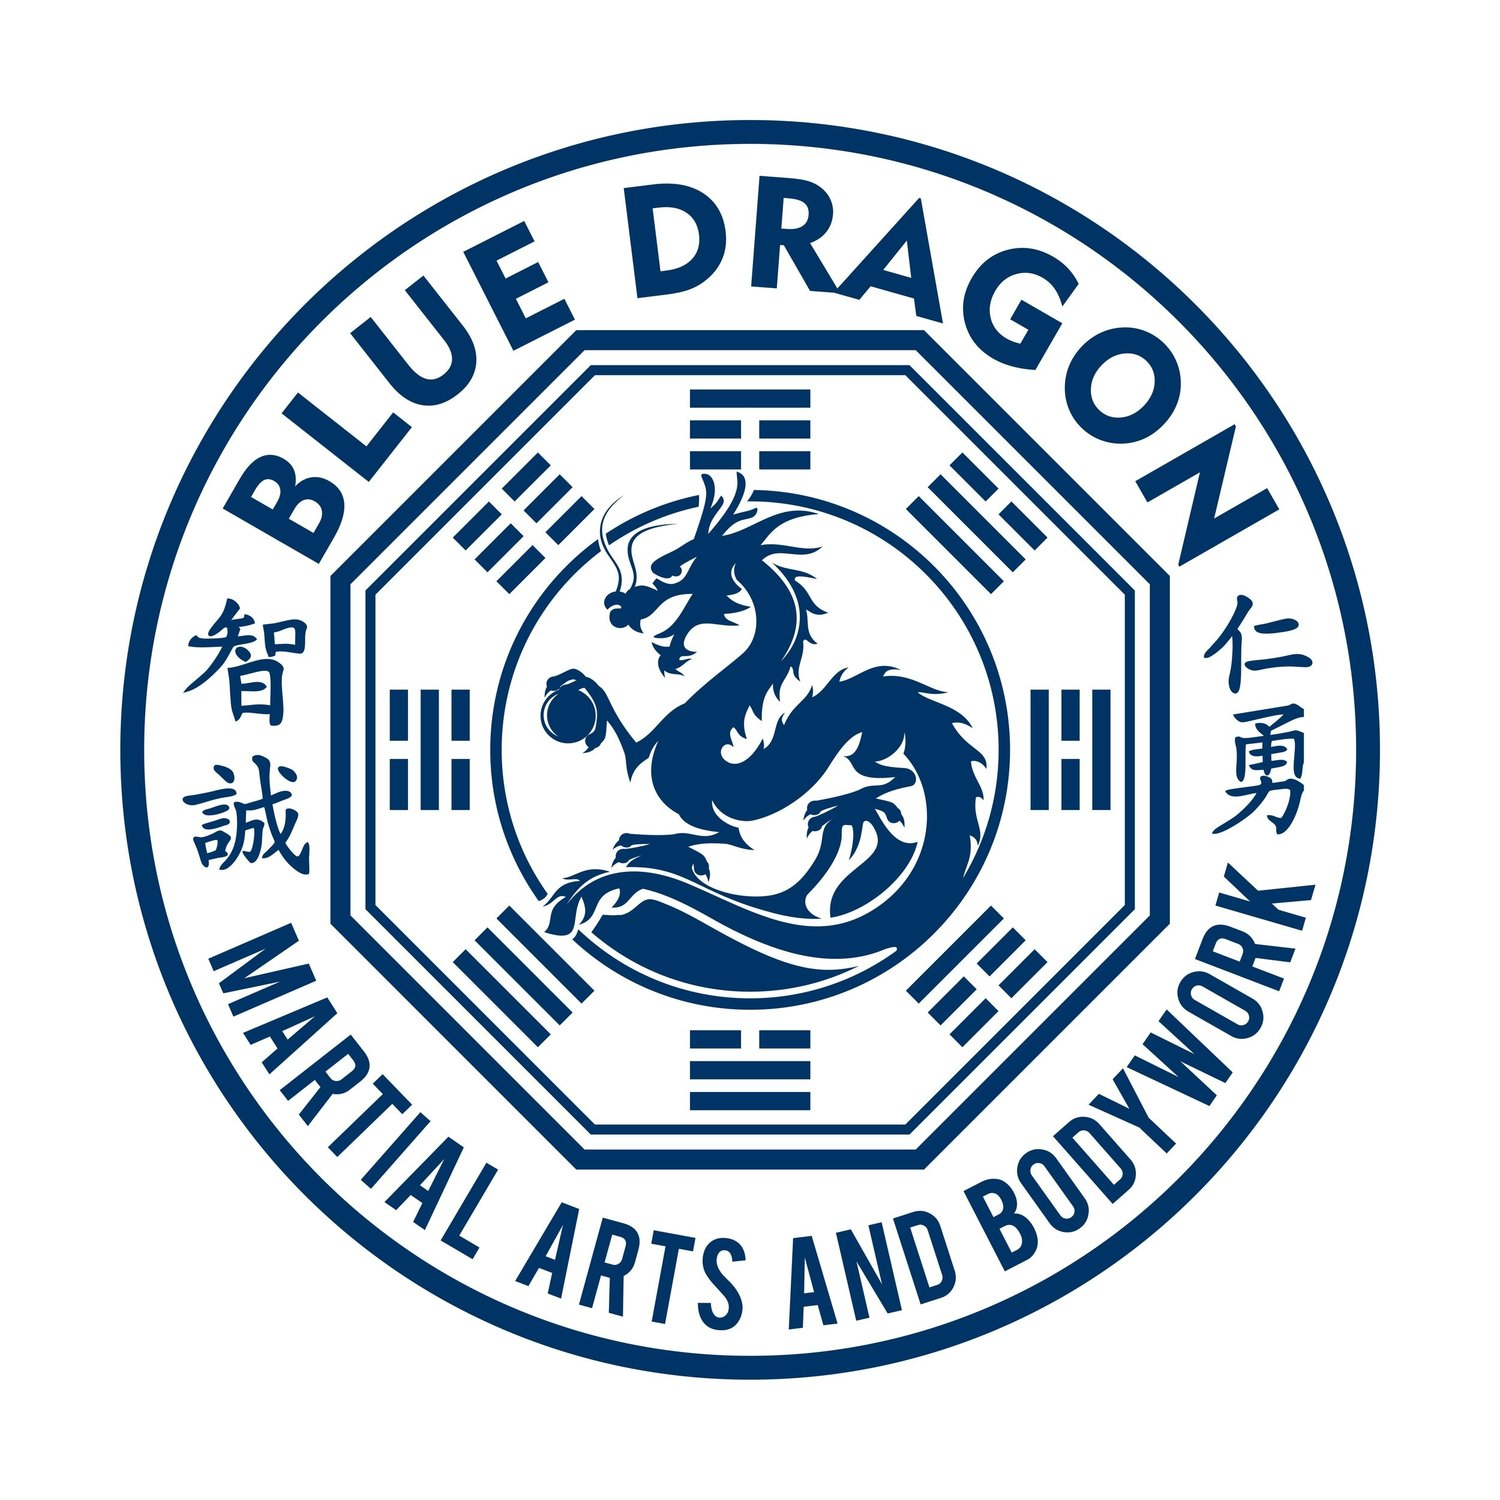 Blue Dragon Martial Arts and Bodywork